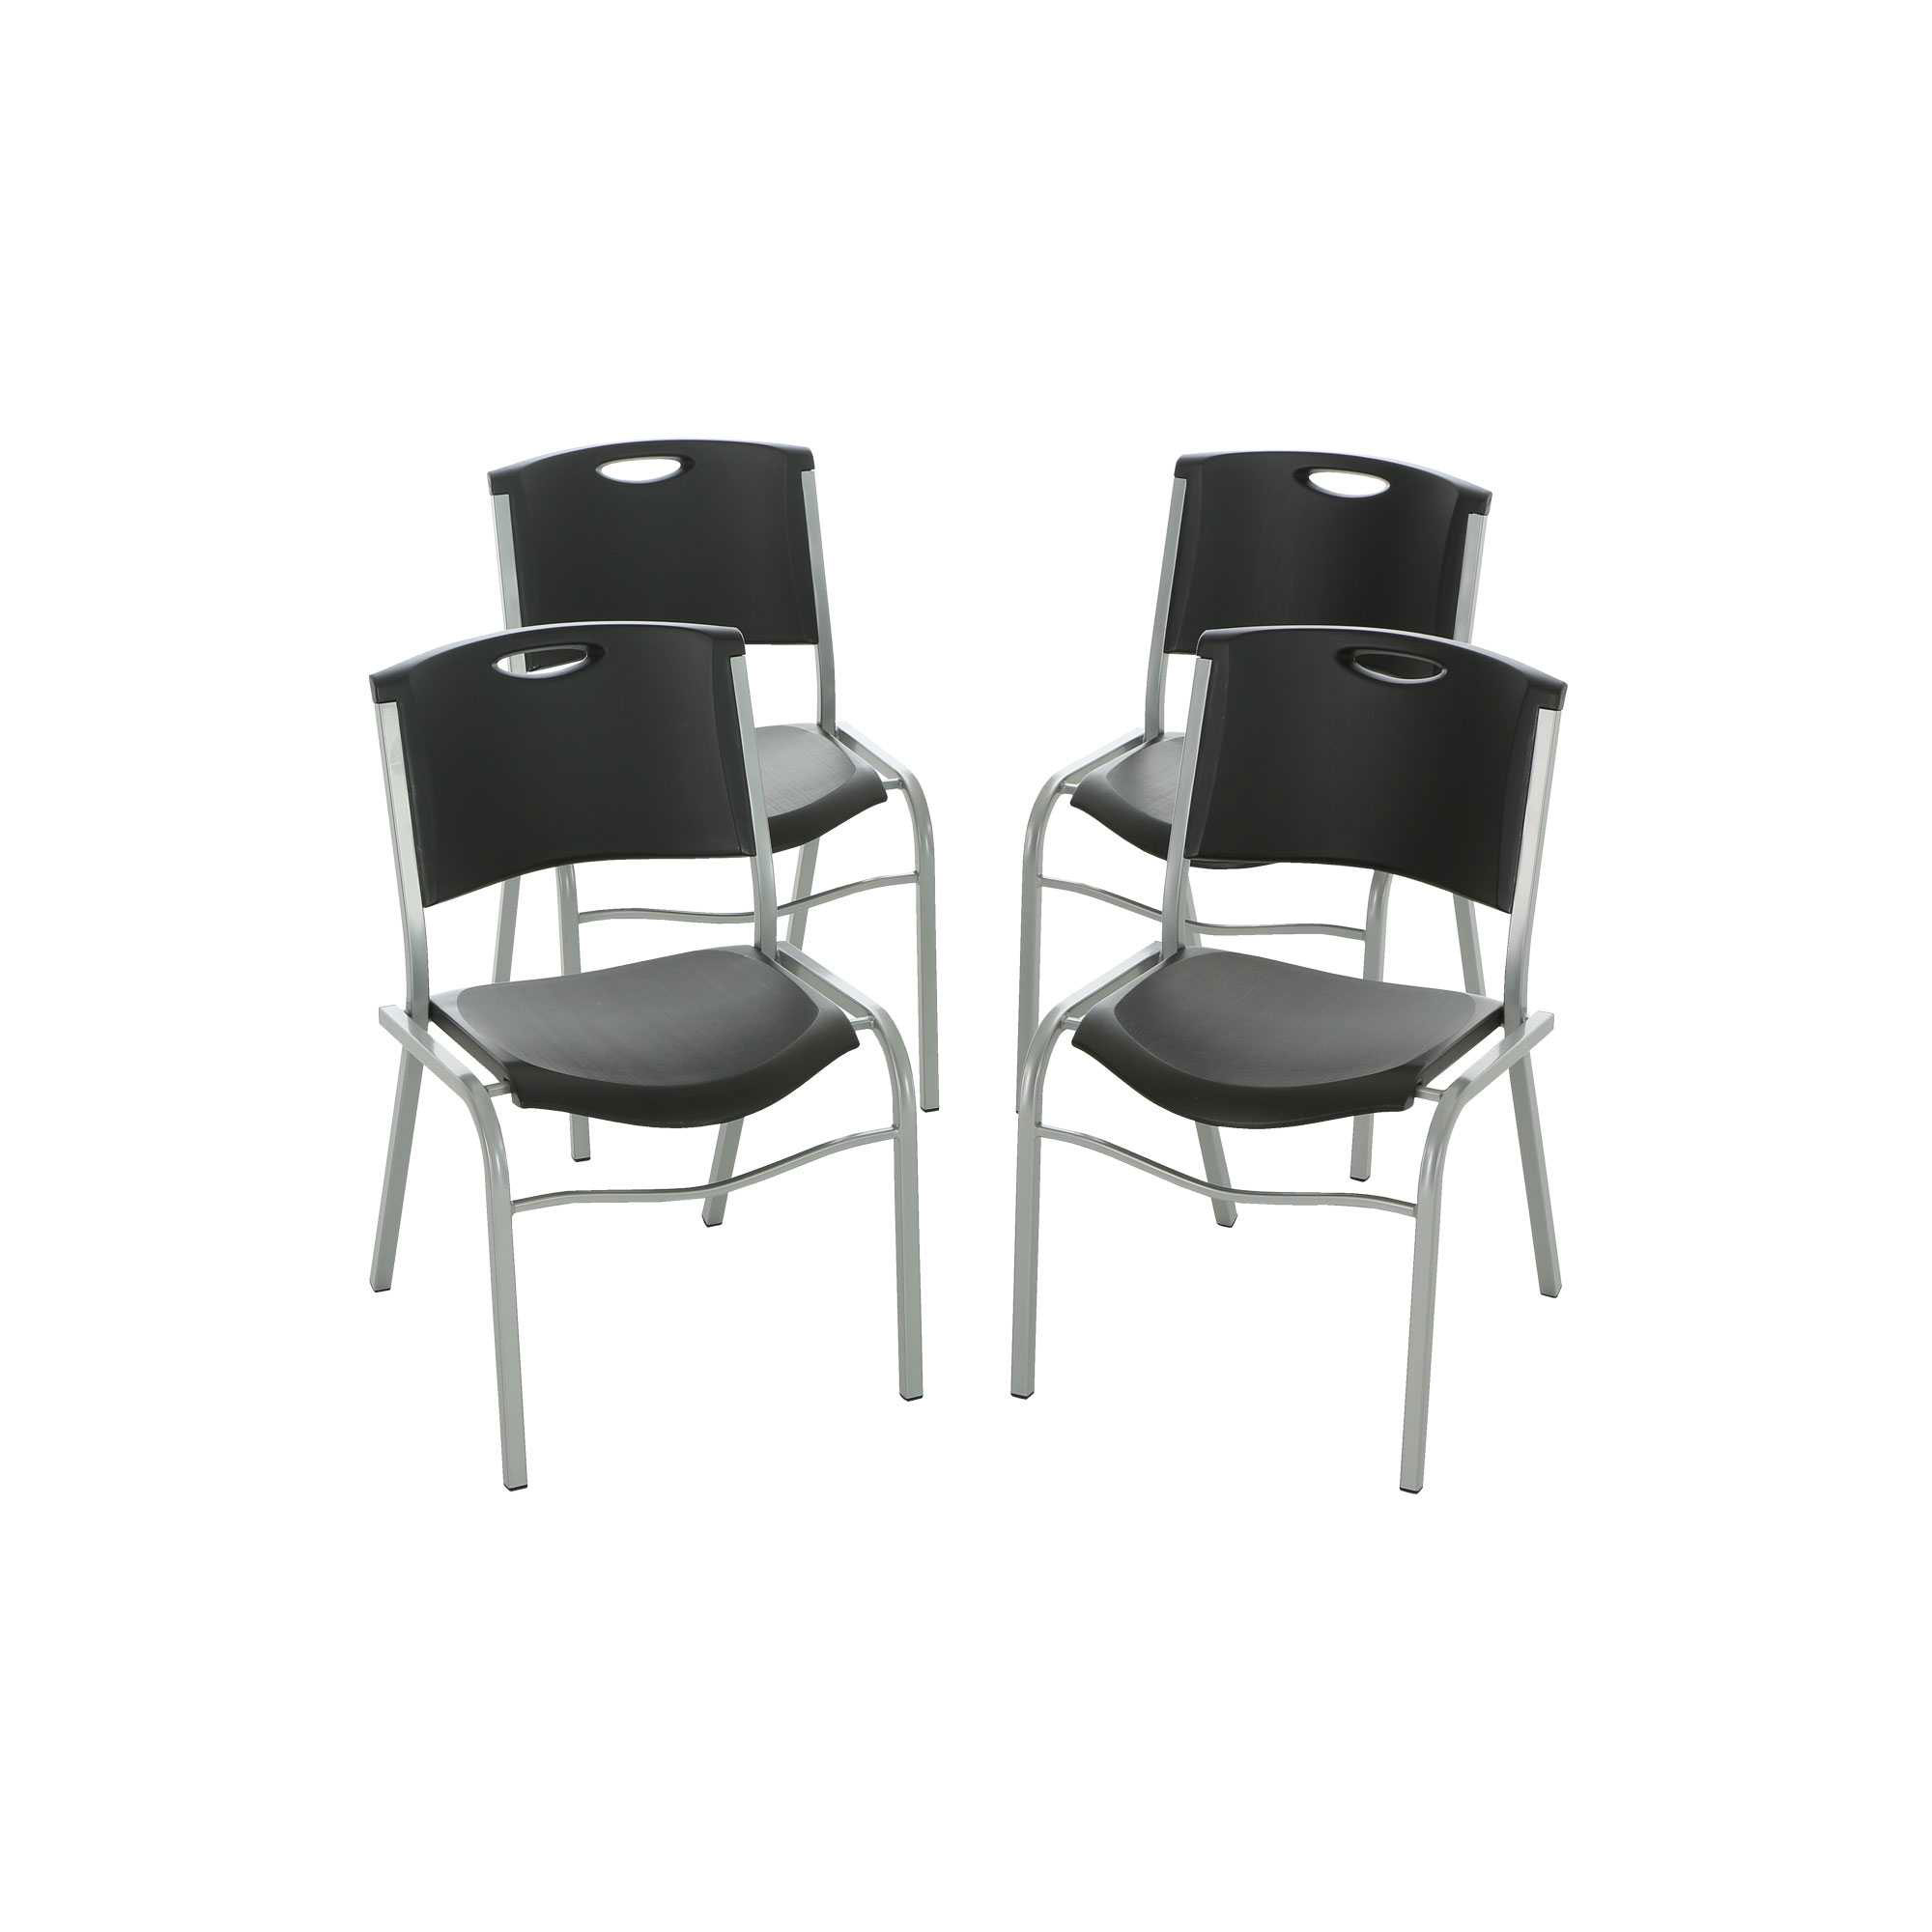 Lifetime Chair Lifetime Stacking Chairs 42830 Black Stackable Chairs 4 Pack